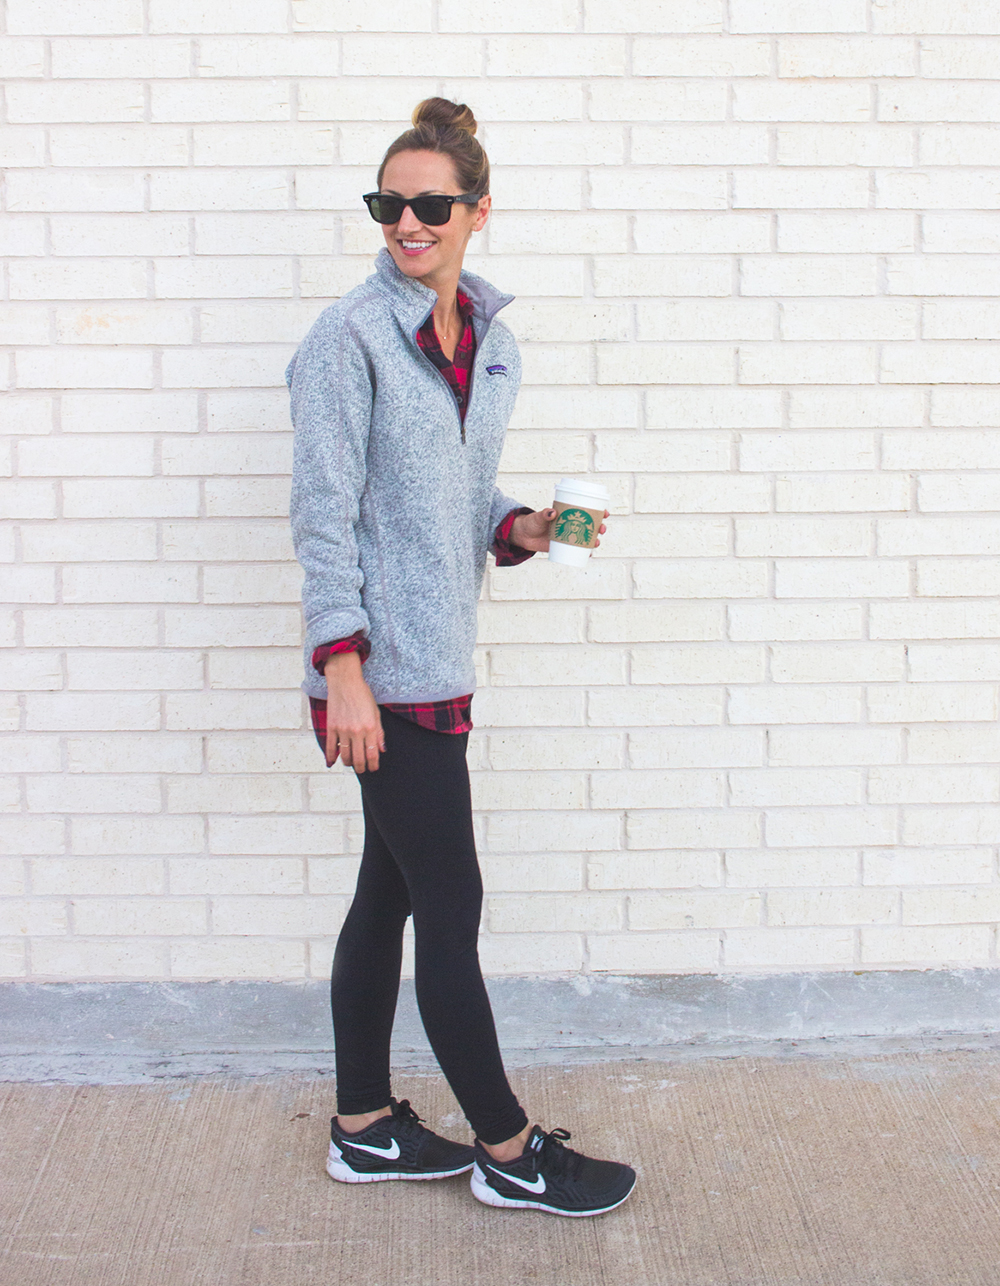 livvyland-blog-olivia-watson-patagonia-fleece-pullover-gray-nordstrom-plaid-layering-zella-live-in-leggings-cozy-exercise-outfit-3